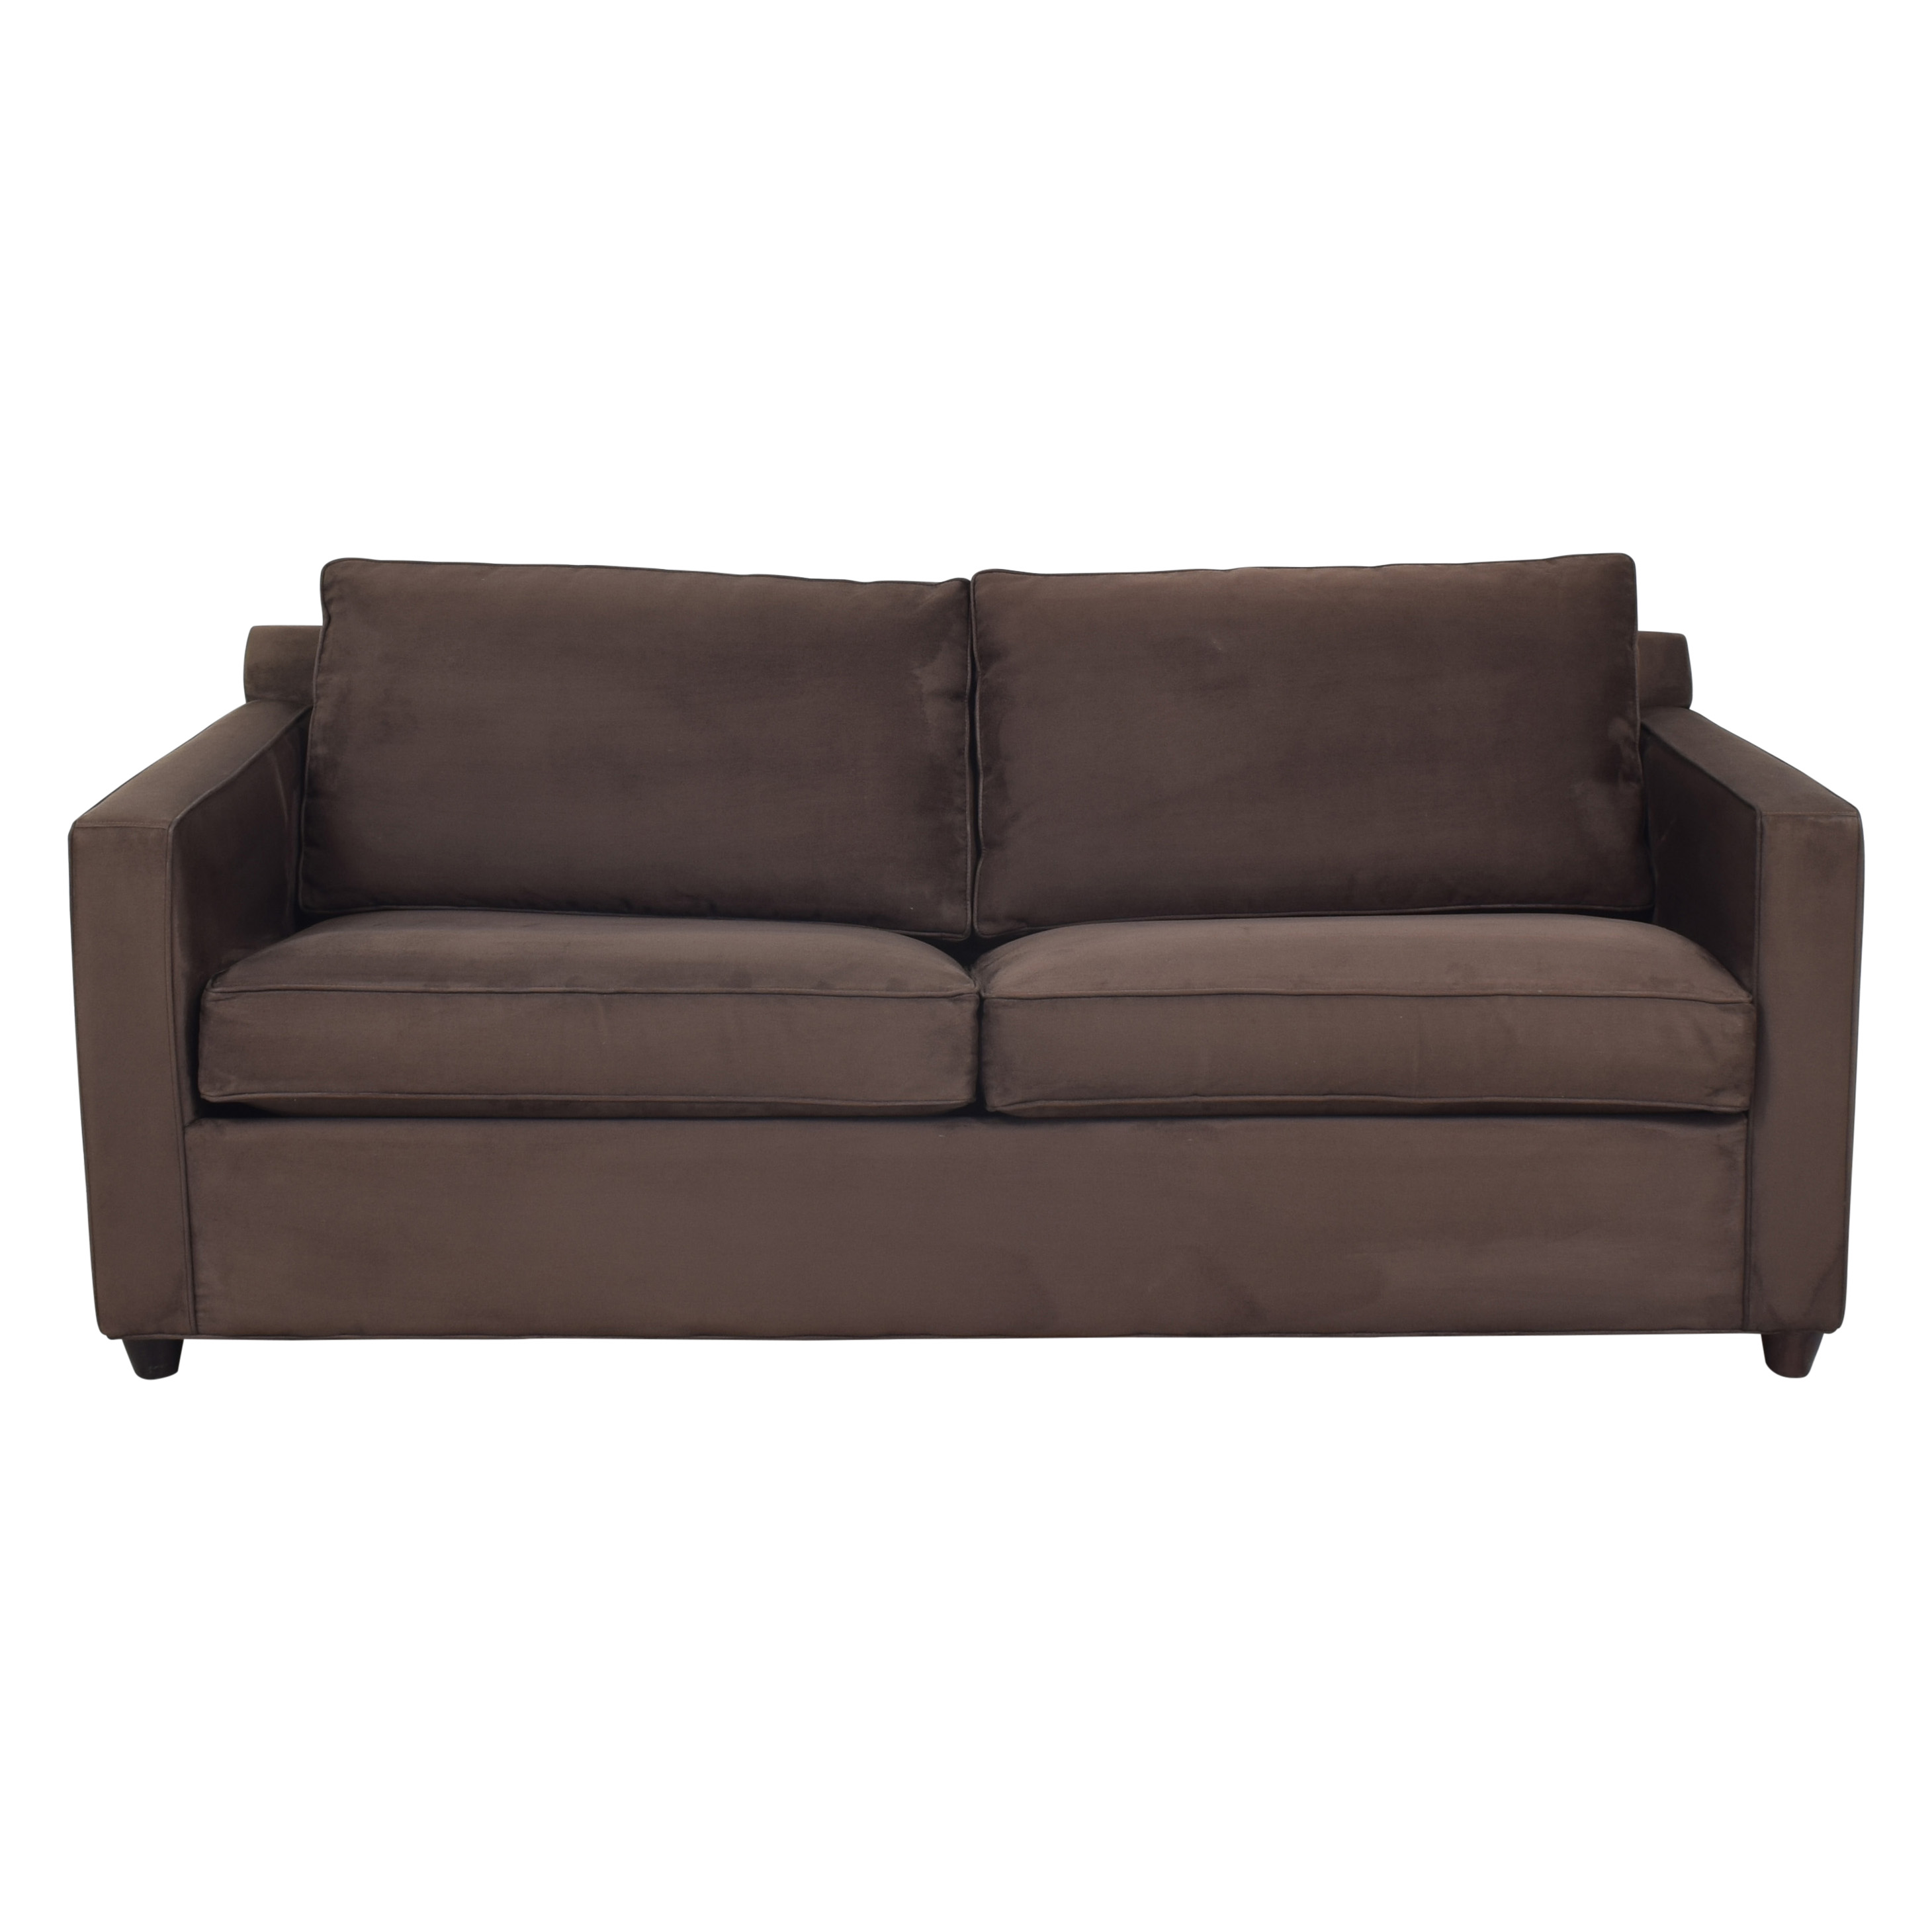 Crate & Barrel Crate & Barrel Barrett Queen Sleeper Sofa on sale